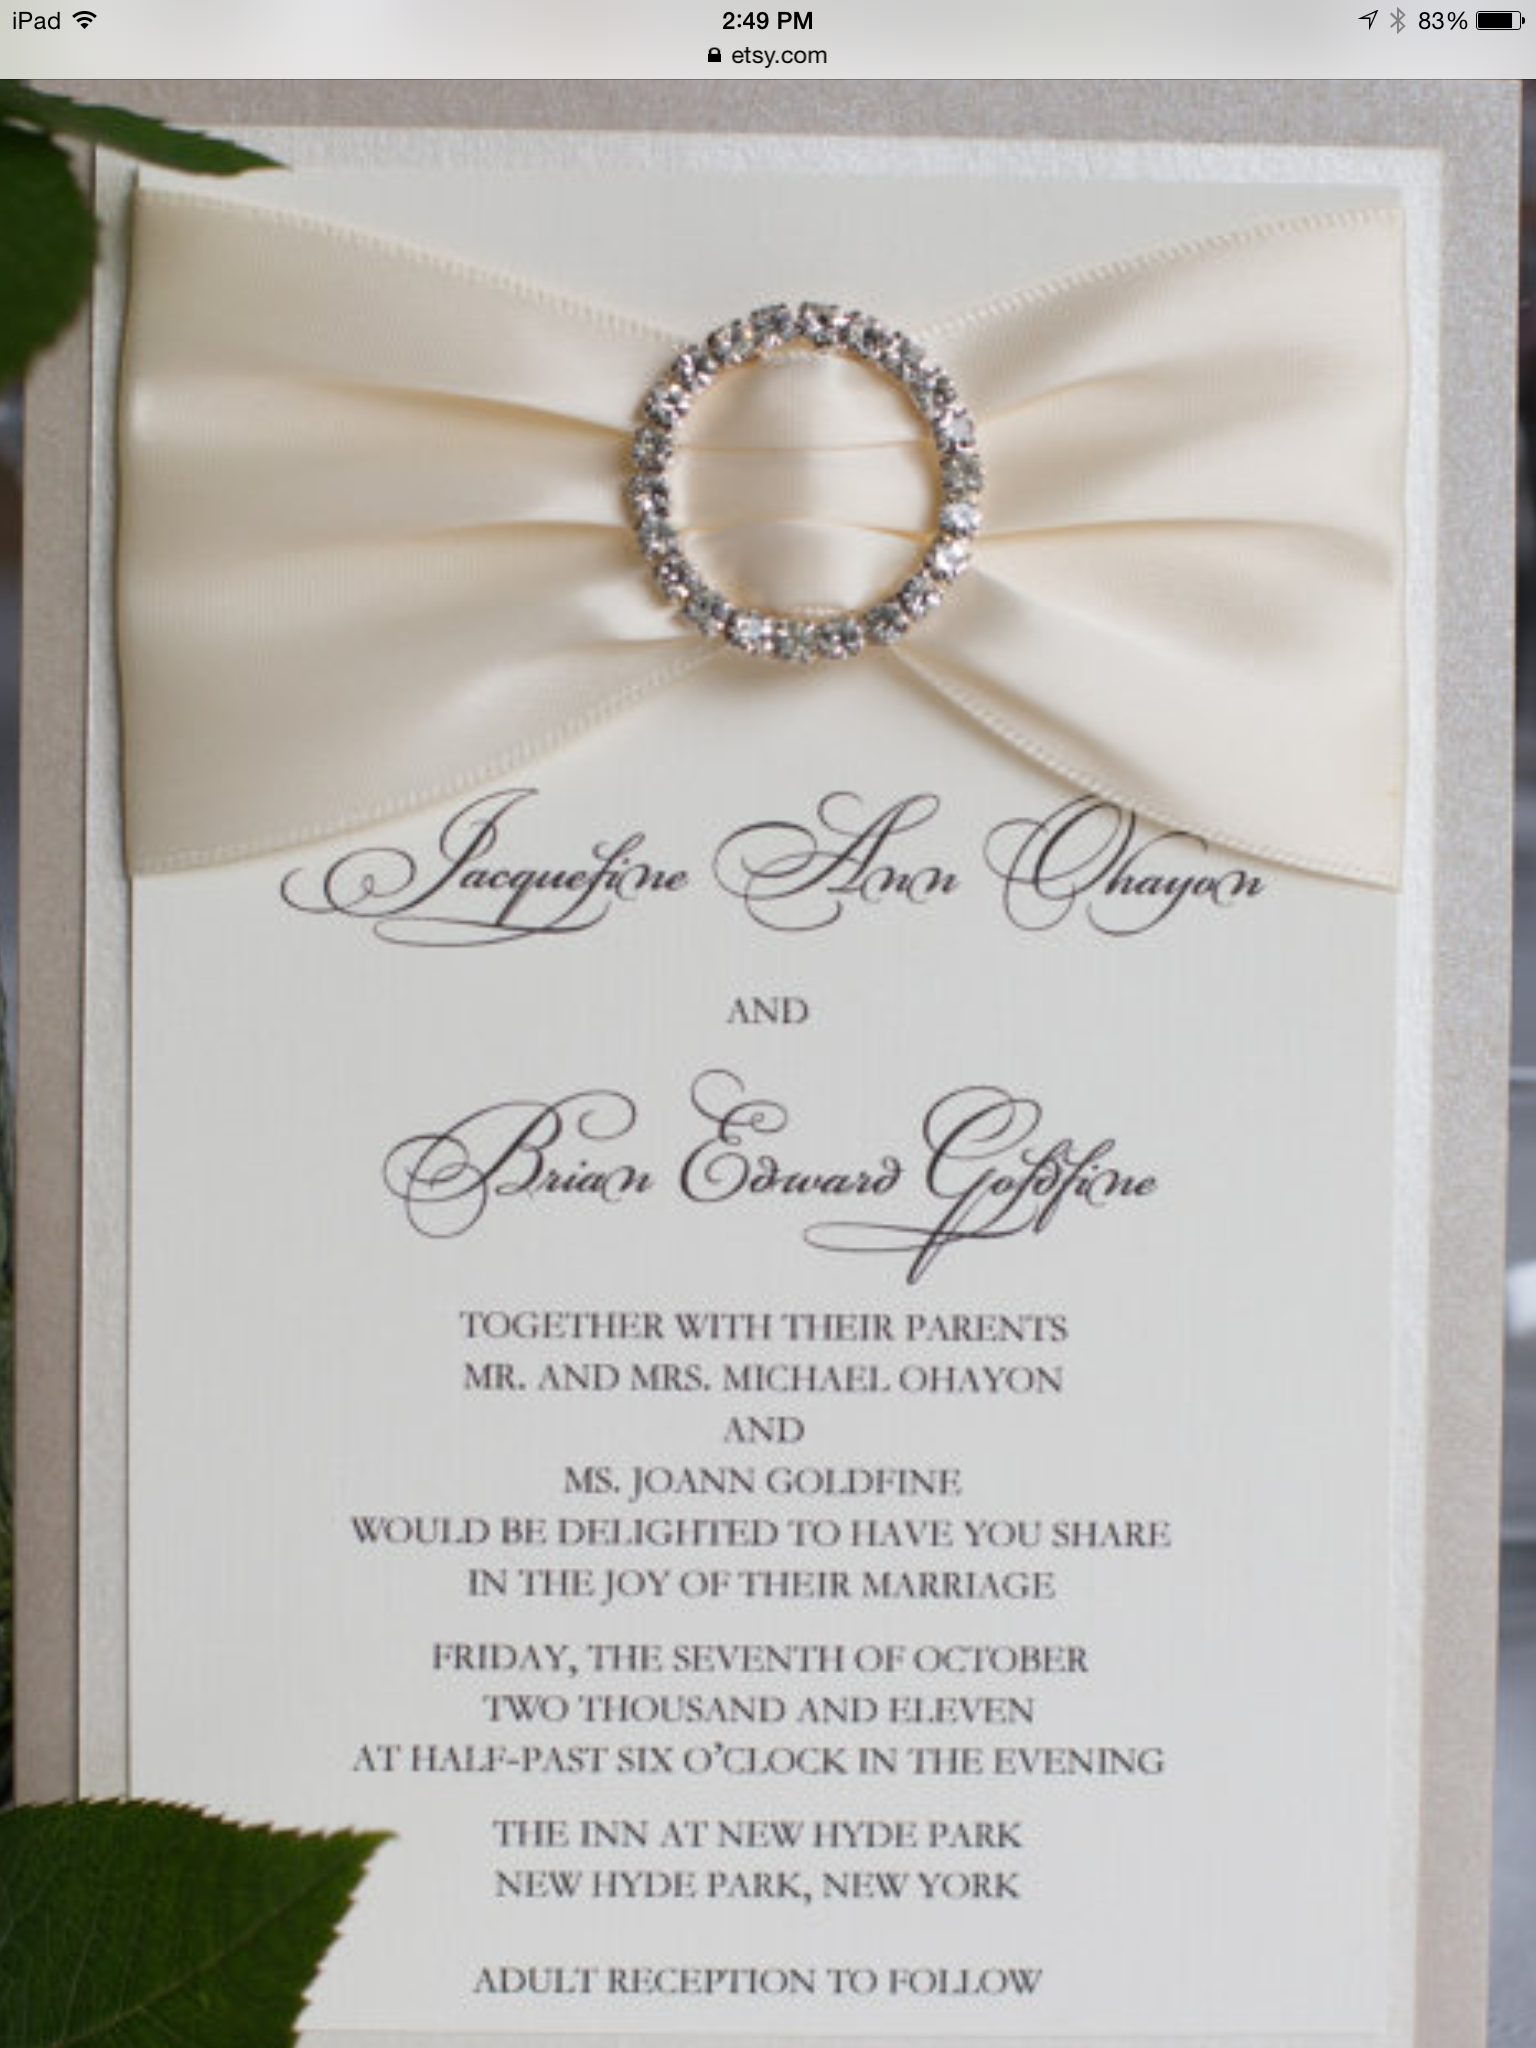 Pin By Sharmone Khan On Wedding Pinterest Invitation Ideas